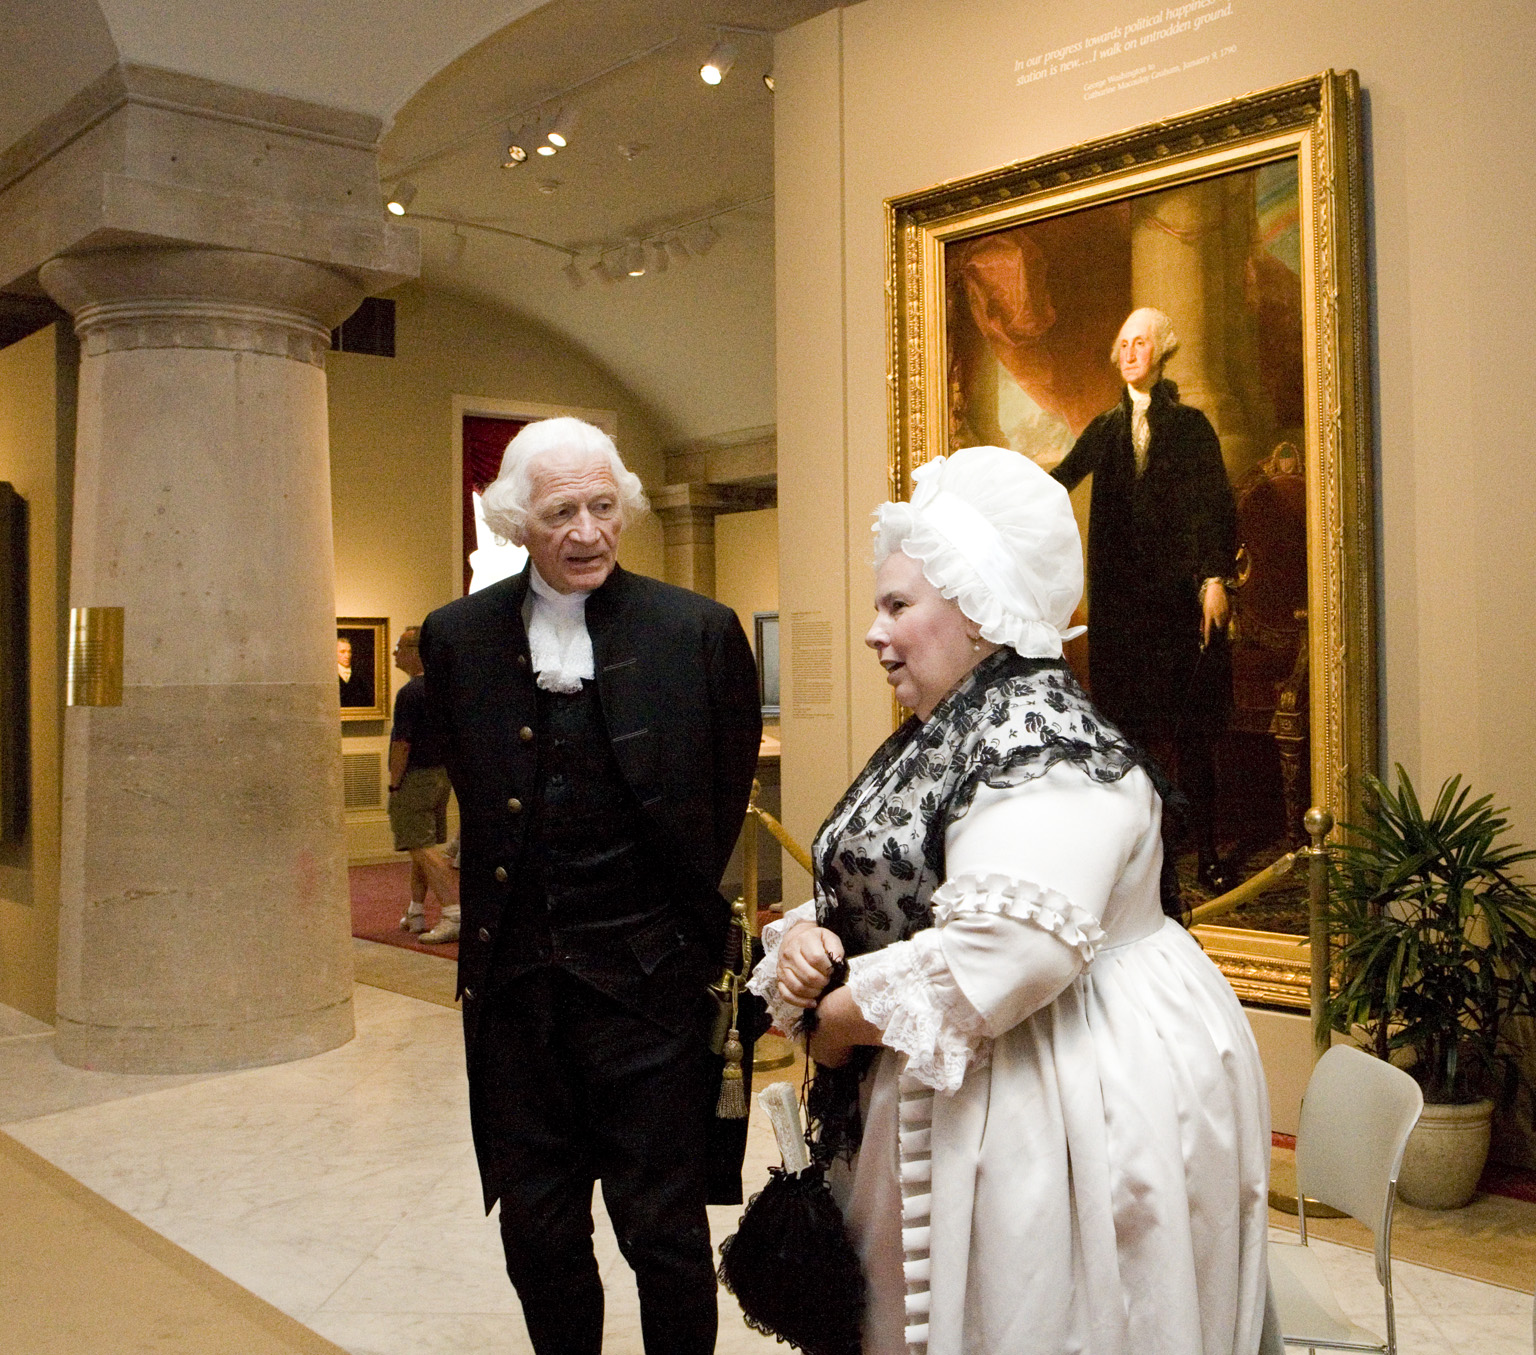 Two people dressed as George and Martha Washington appear in front of a George Washington portrait.